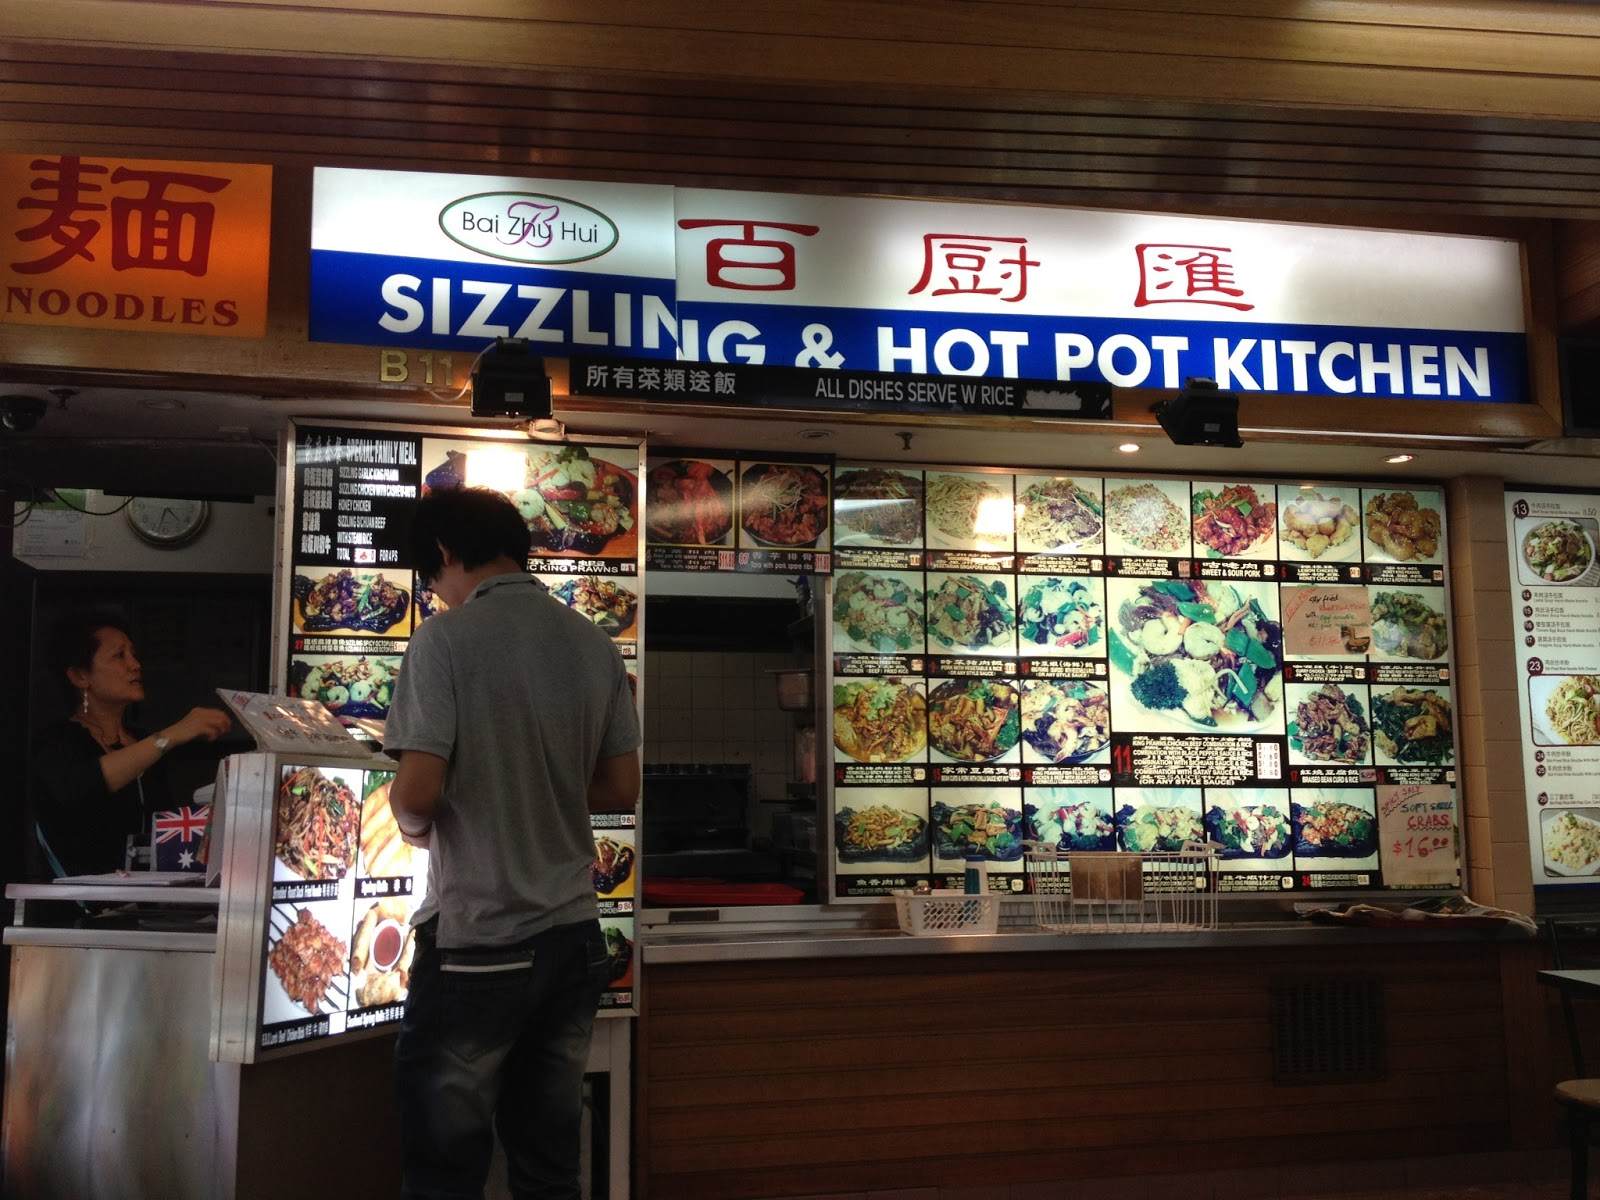 Sizzling & Hot Pot Kitchen